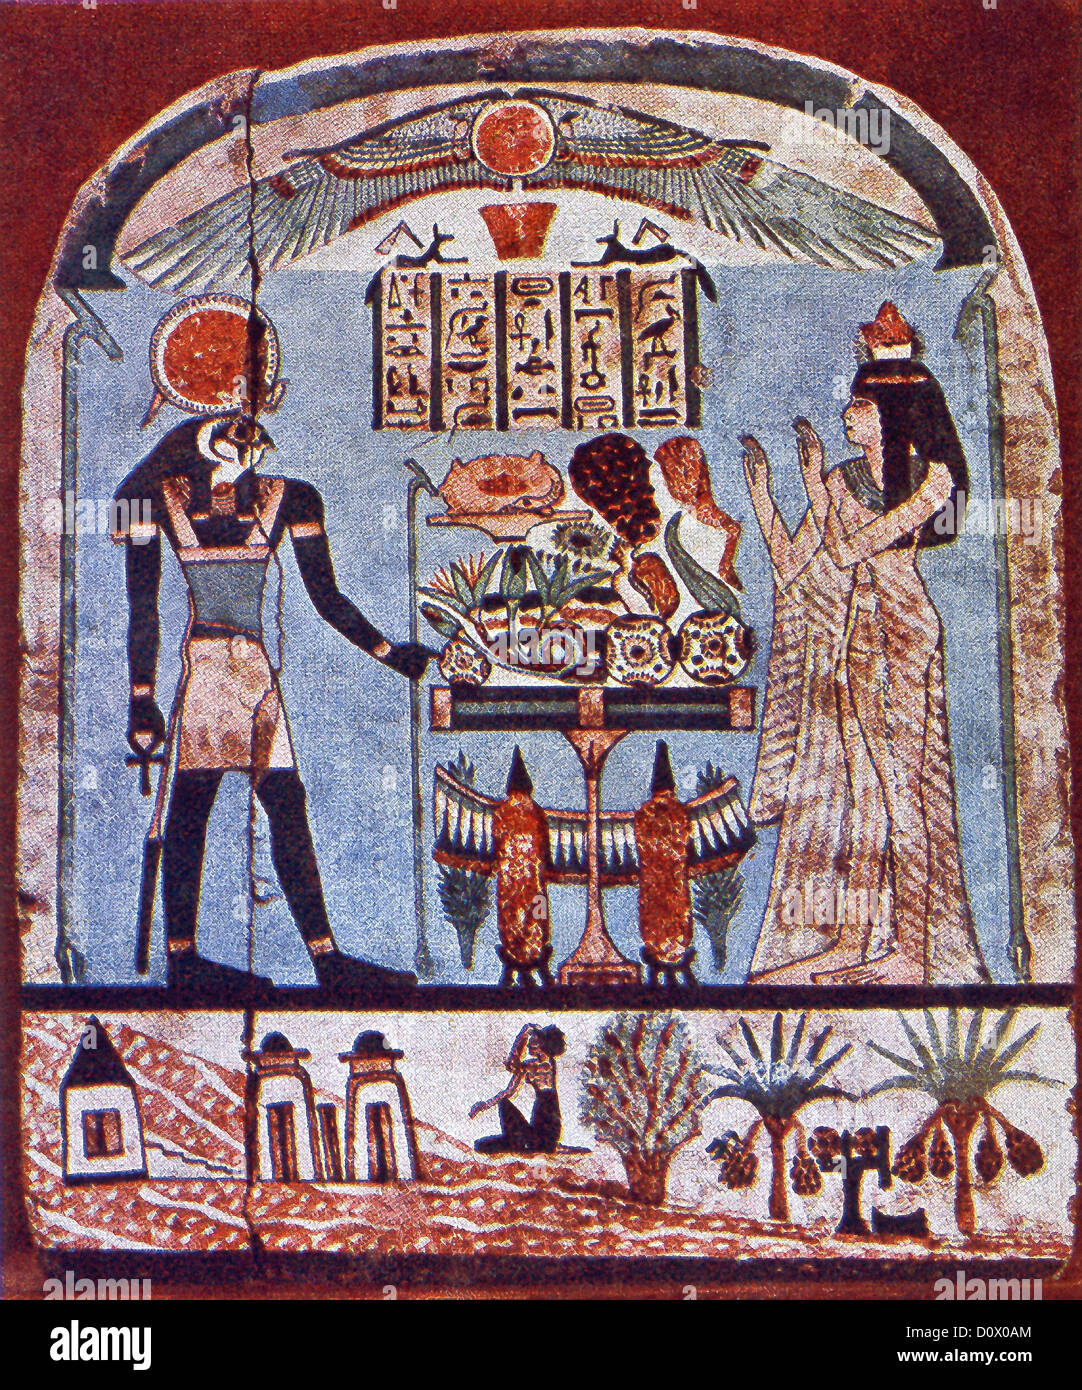 This funerary landscape painted on the stele of Djedamuniu(es)ankh from her tomb in Western Thebes dates to the - Stock Image